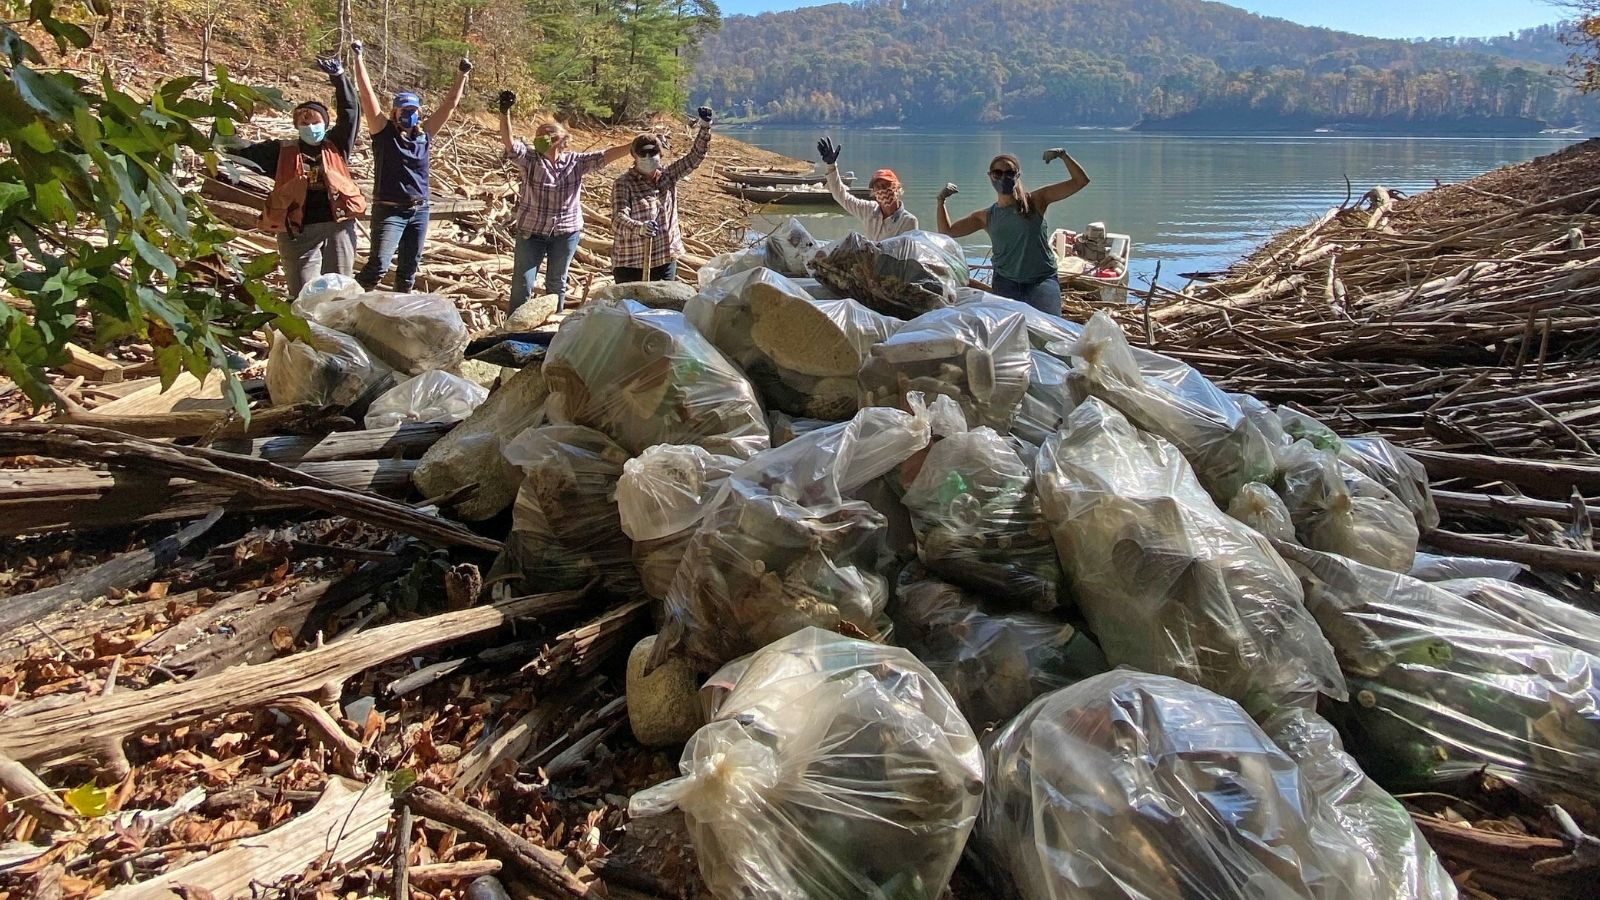 Volunteers Remove 35,500 lbs. of Trash at 8 River Cleanups During 'Keep the Tennessee River Watershed Beautiful Month'